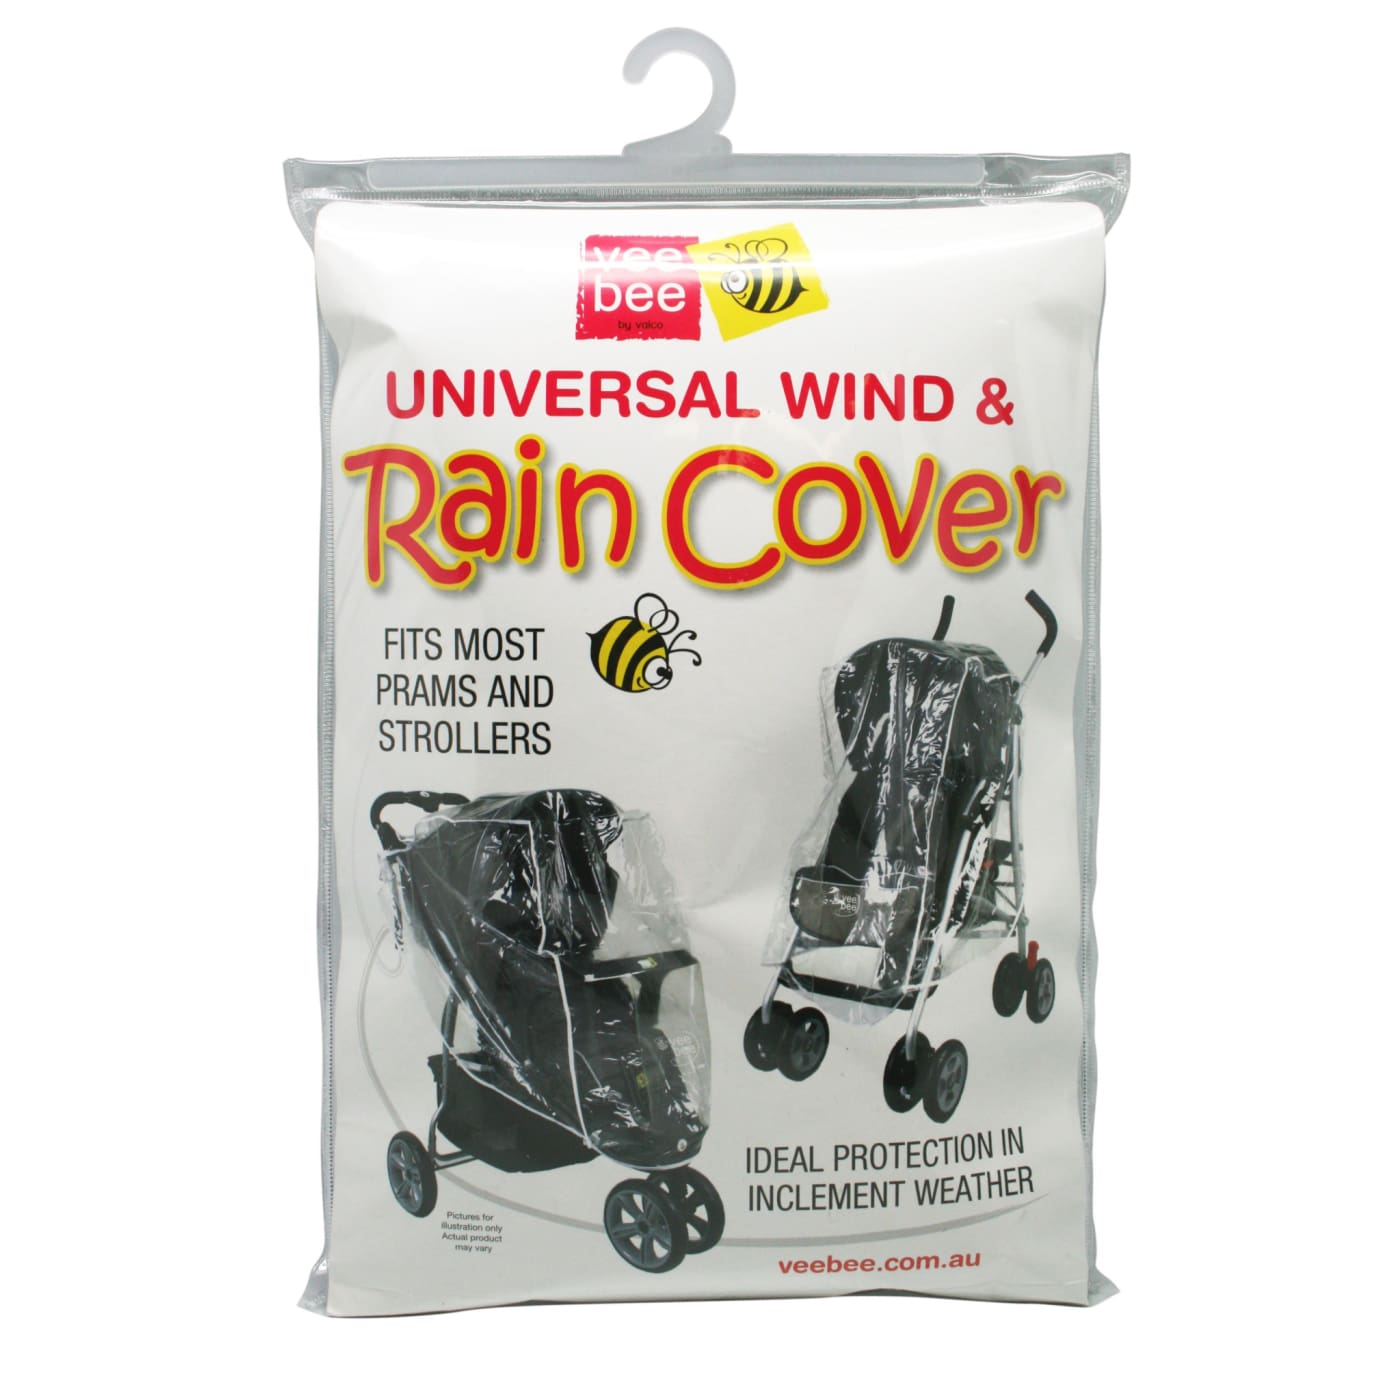 Veebee Universal Wind & Raincover - PRAMS & STROLLERS - SUN COVERS/WEATHER SHIELDS